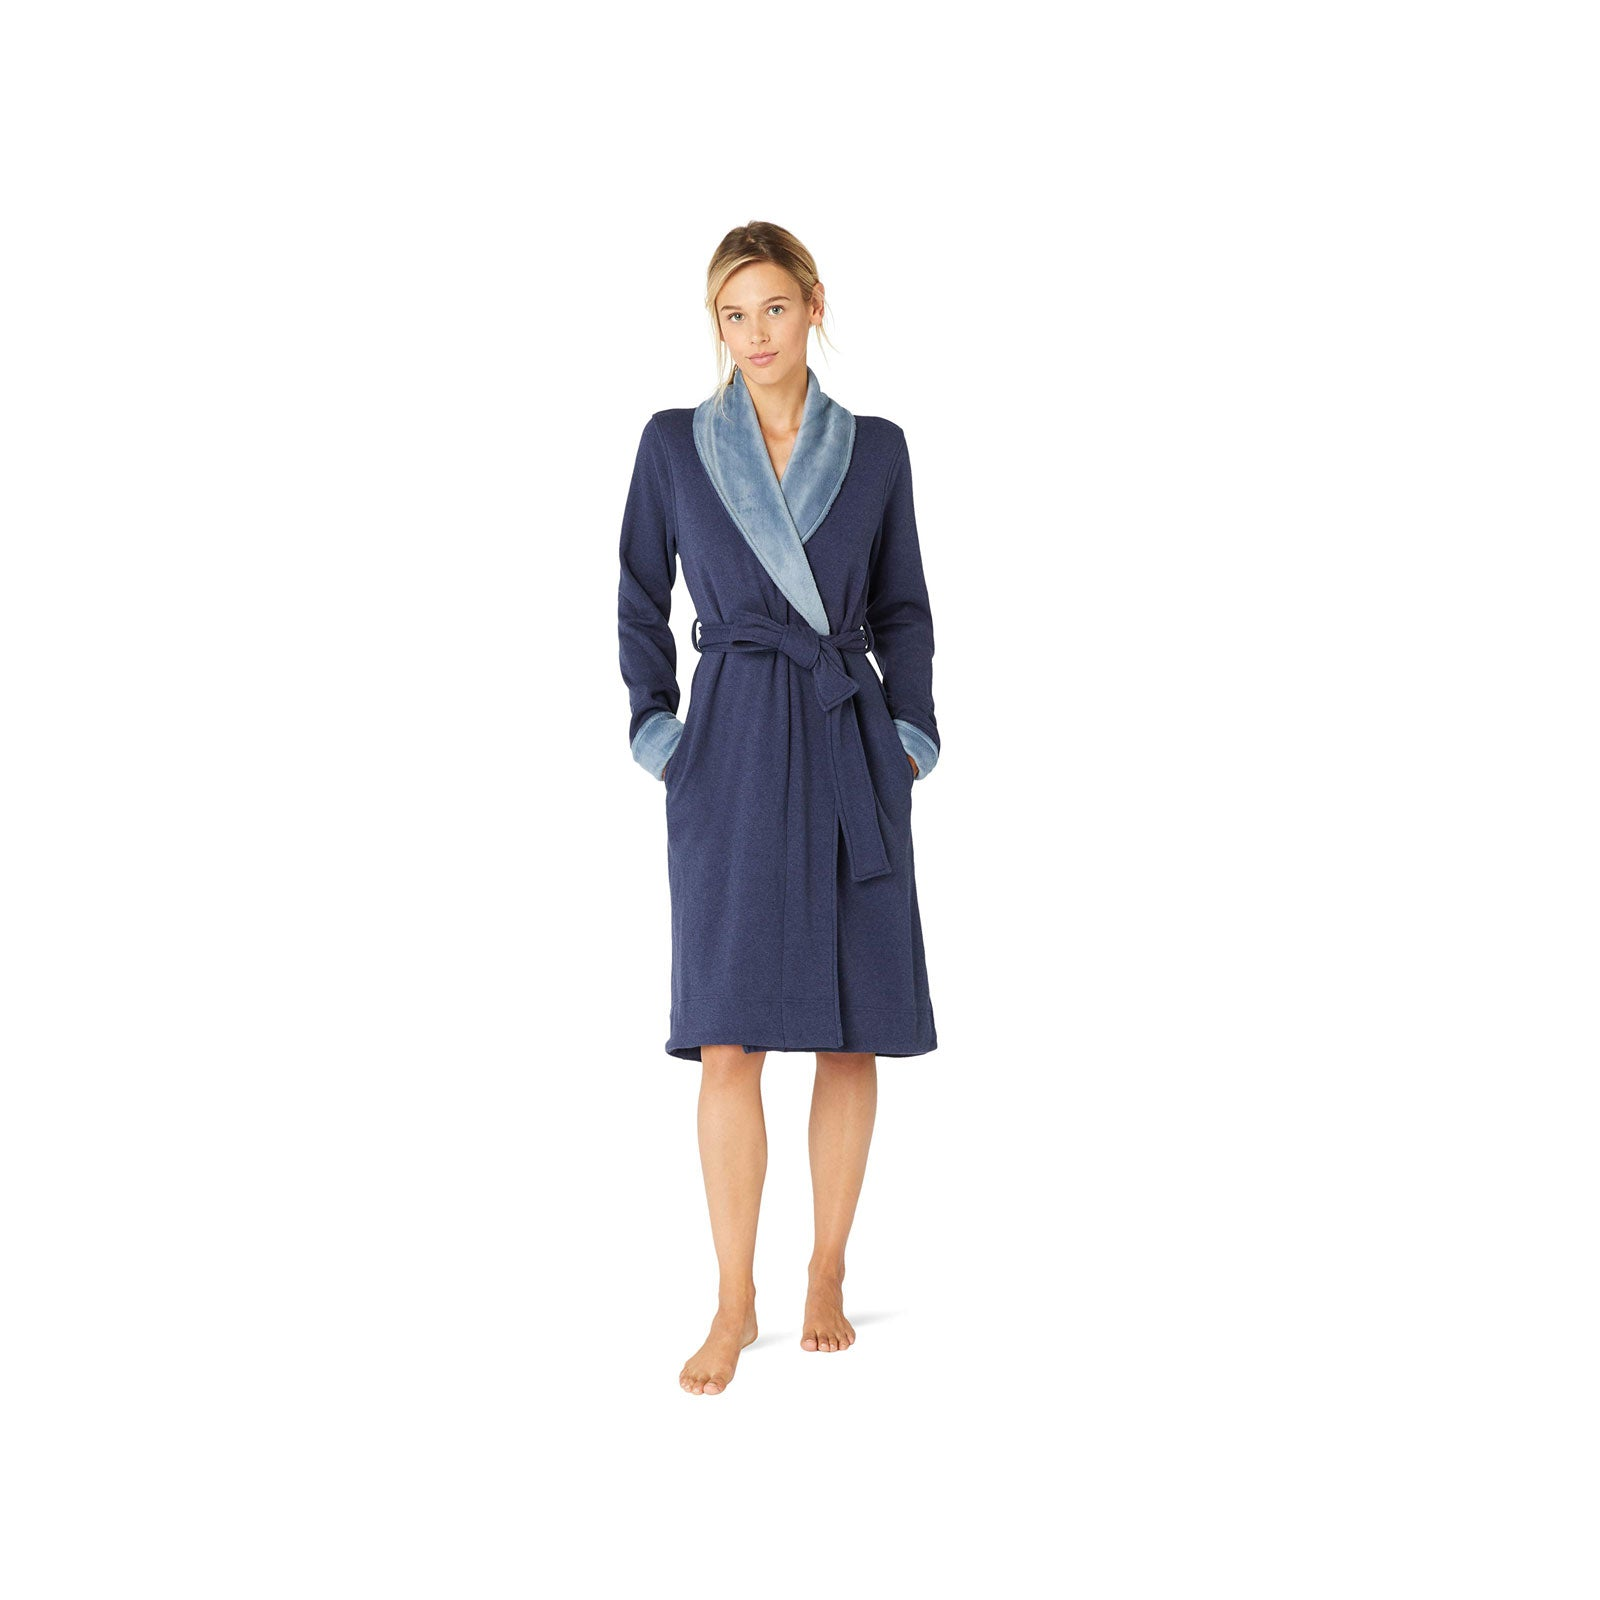 UGG Duffield Robe -Navy Heather